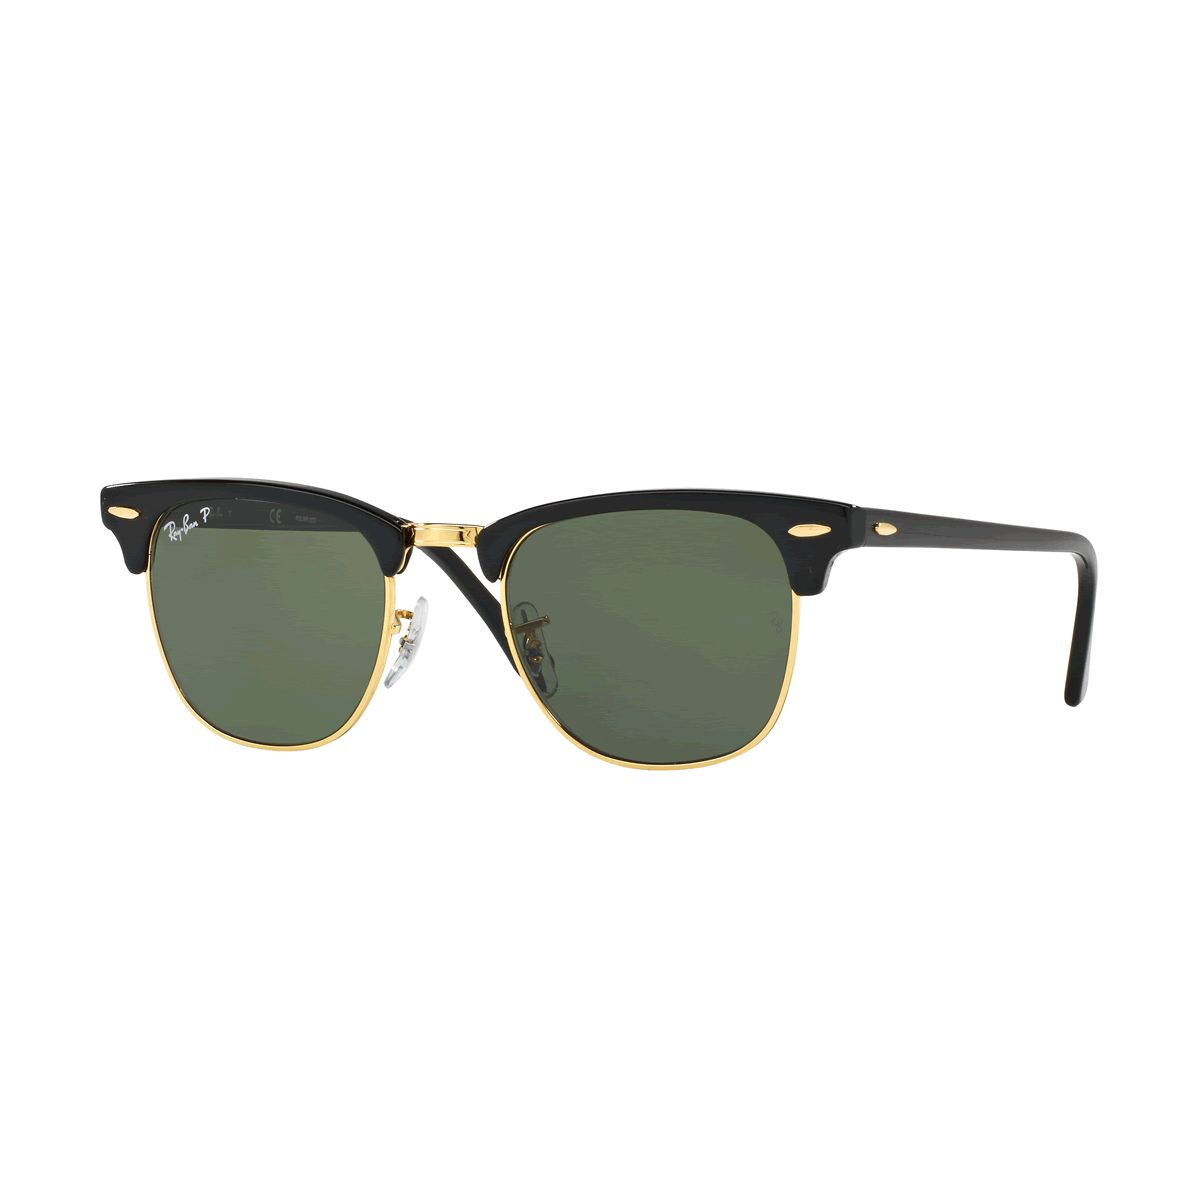 326a3158c6a Ray-Ban Sunglasses - Mens   Womens Ray-Bans - Macy s